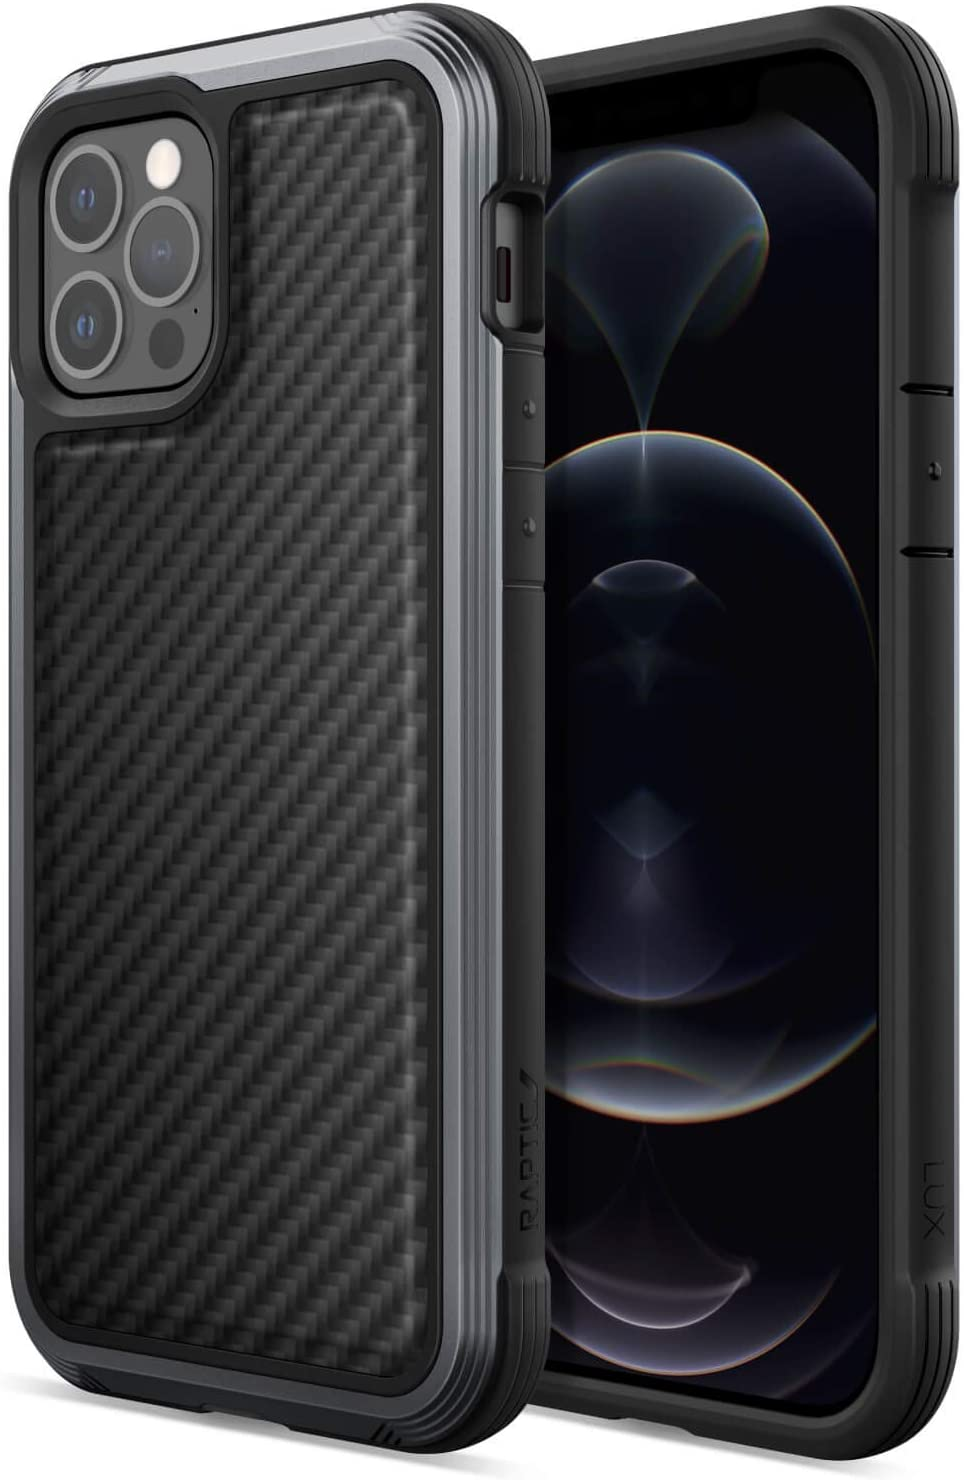 Raptic Lux Case Compatible with iPhone 12 Case & iPhone 12 Pro Case, Strong Durable Thin Cover, Impact Resistant Rubber, Wireless Charging Compatible, Fits iPhone 12 & 12 Pro, Black Carbon Fiber